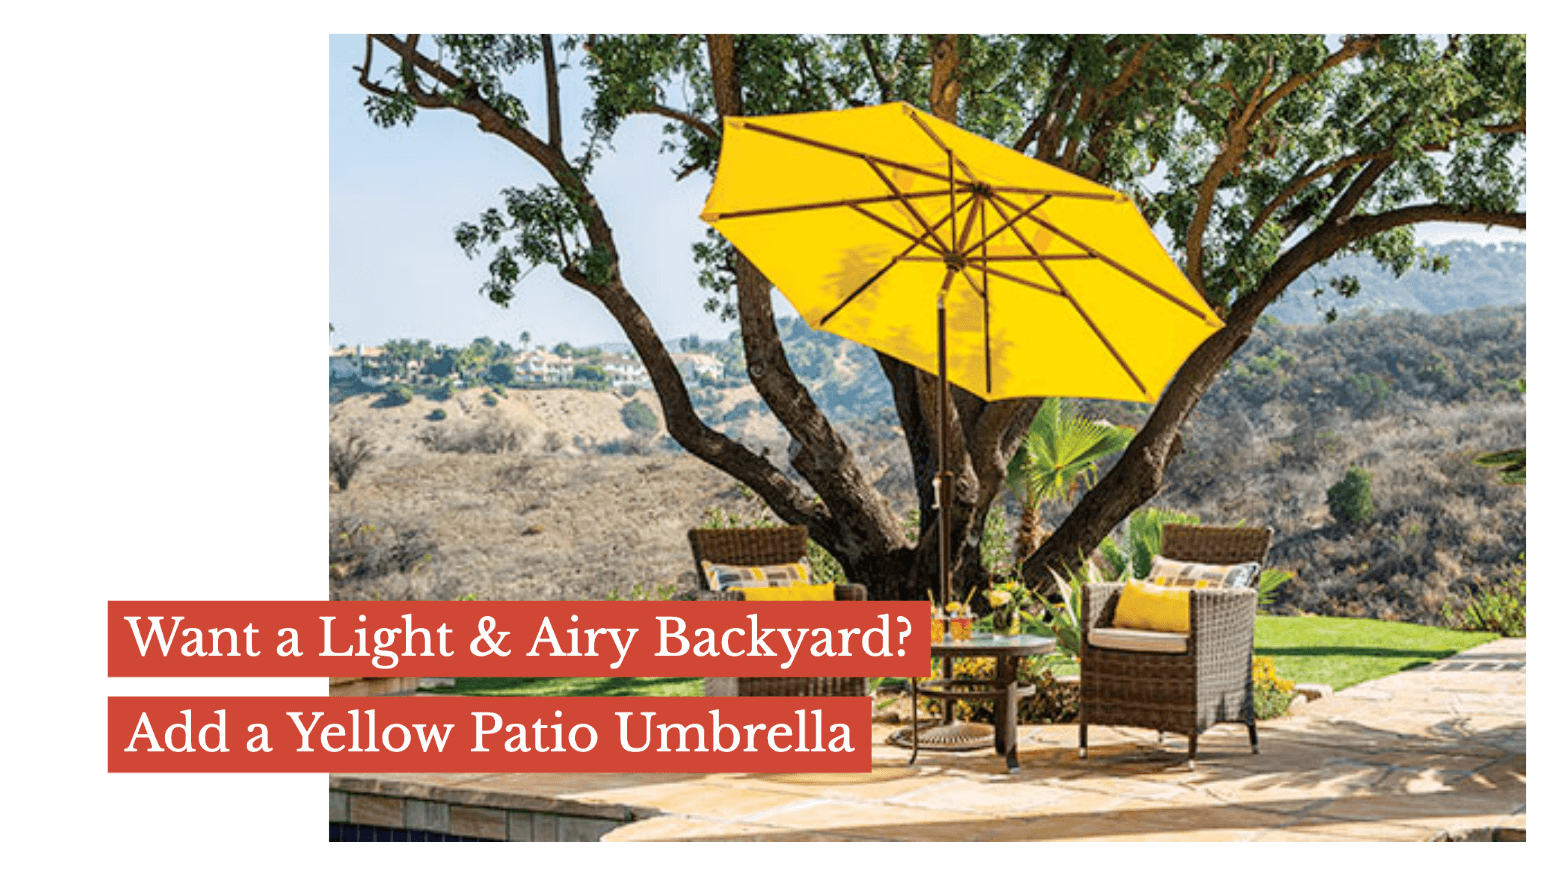 Want a Light & Airy Backyard? Add a Yellow Patio Umbrella